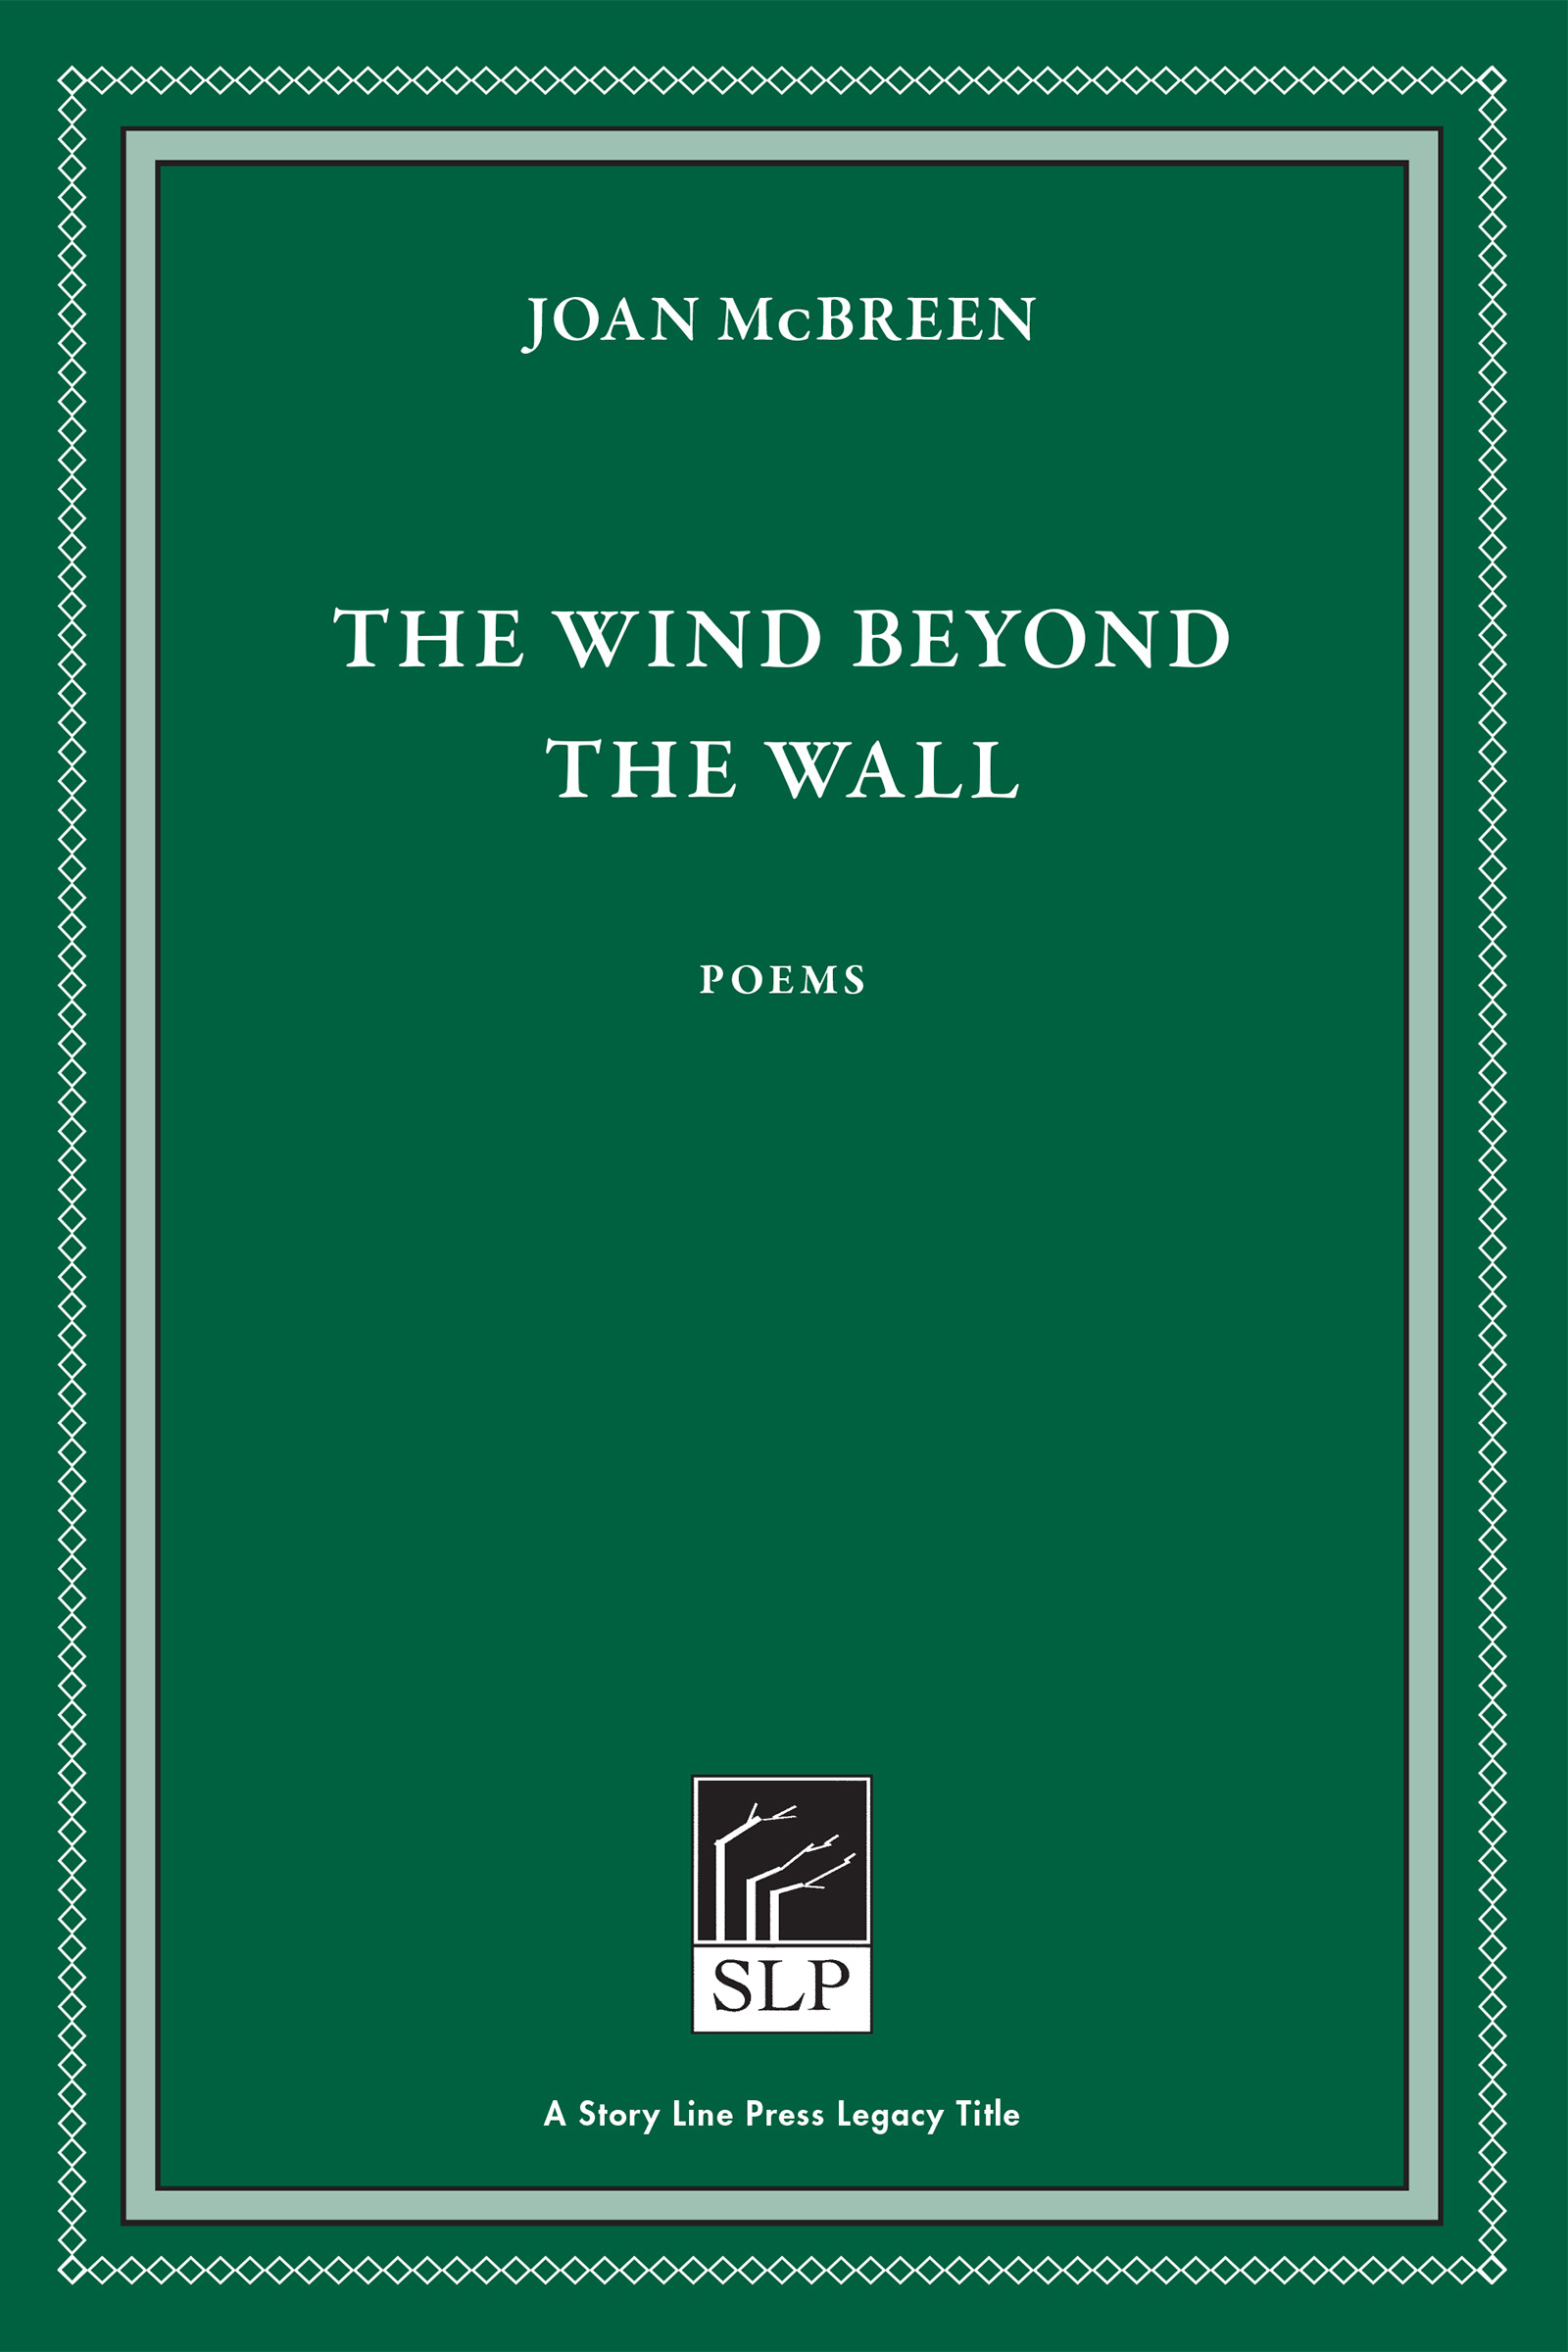 Story Line Press legacy tittle, Joan McBreen The Wind Beyond the Wall Poems, white script text against emerald green background.